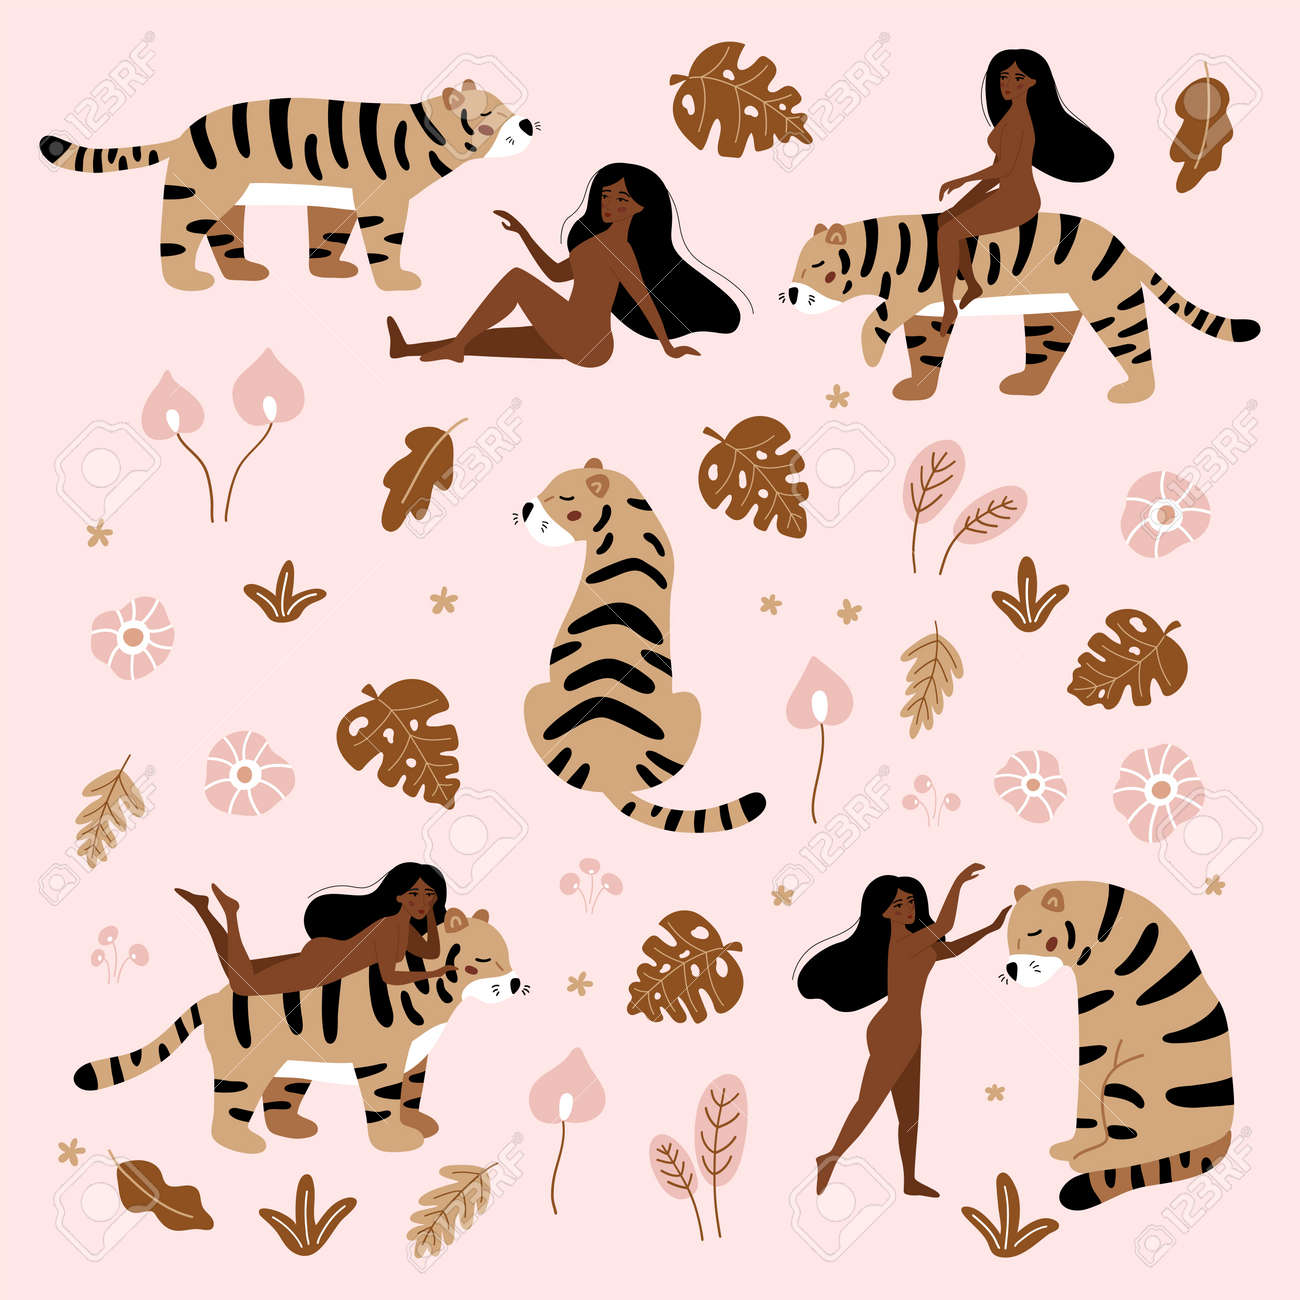 Nude women with wild cat - tiger. Tropical hand drawn plants. Exotic flowers on pink background. Wildlife set for feminism and body positive concept. - 169087096